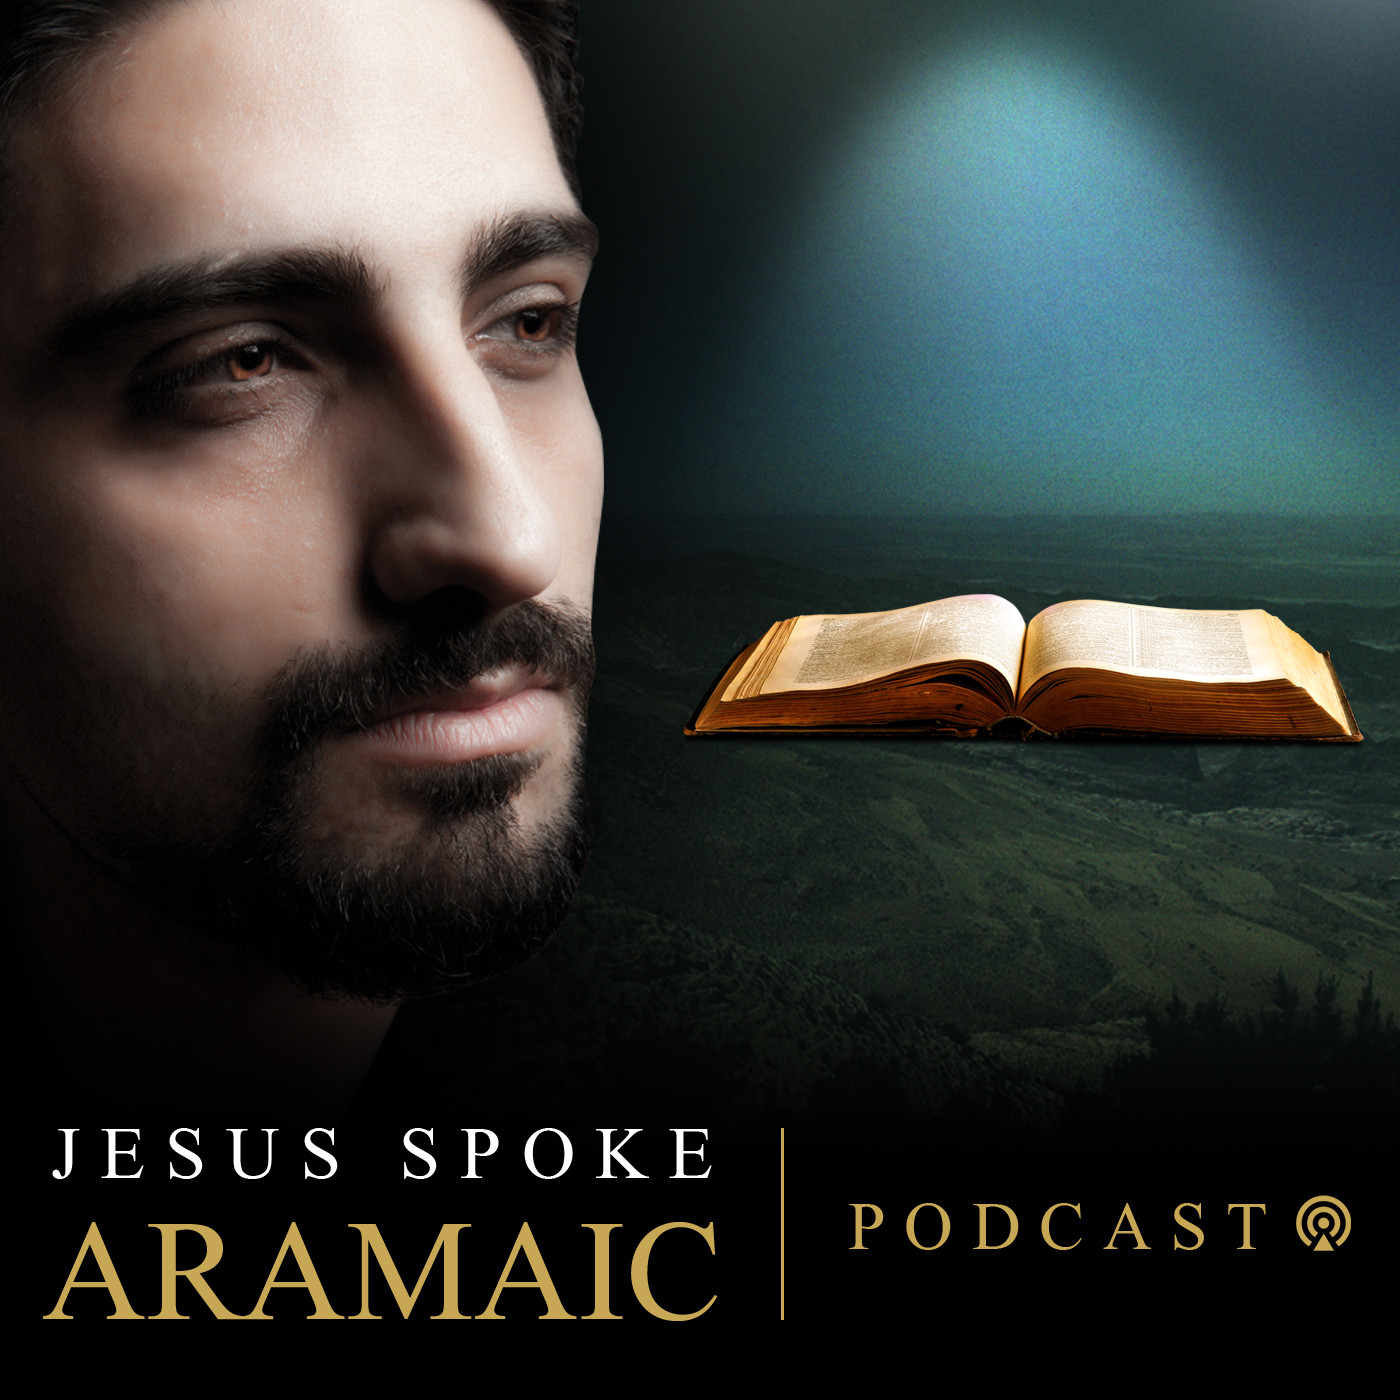 Jesus Spoke Aramaic Podcasts